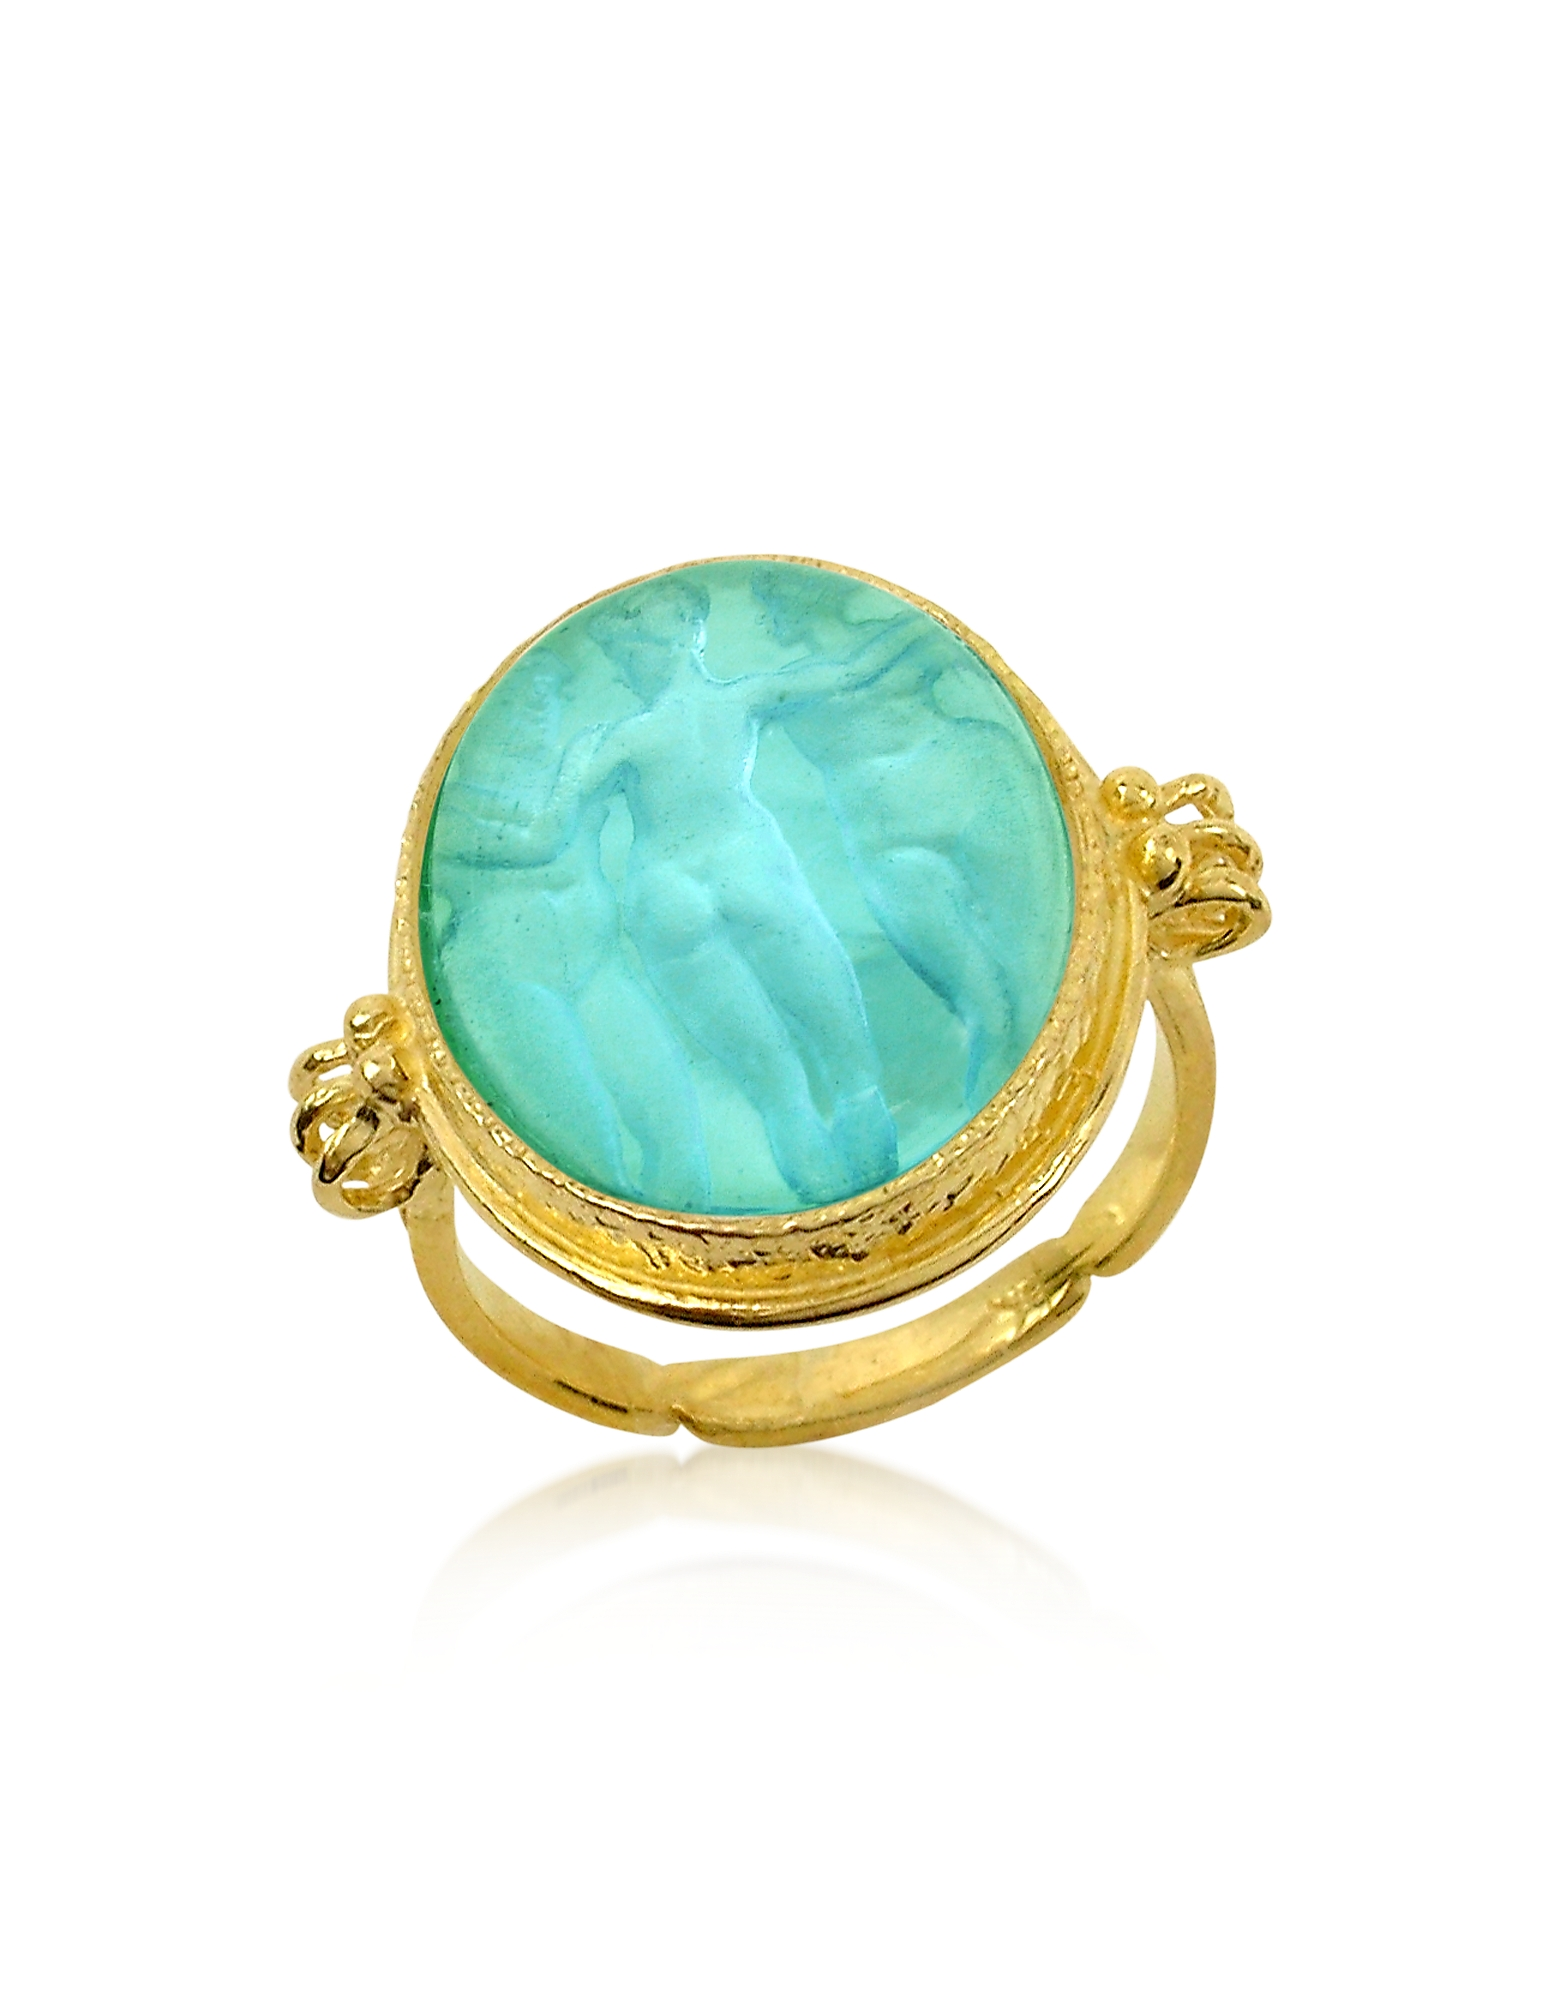 Tagliamonte Designer Rings, Three Graces - 18K Gold Turquoise Vitreous Paste Cameo Ring